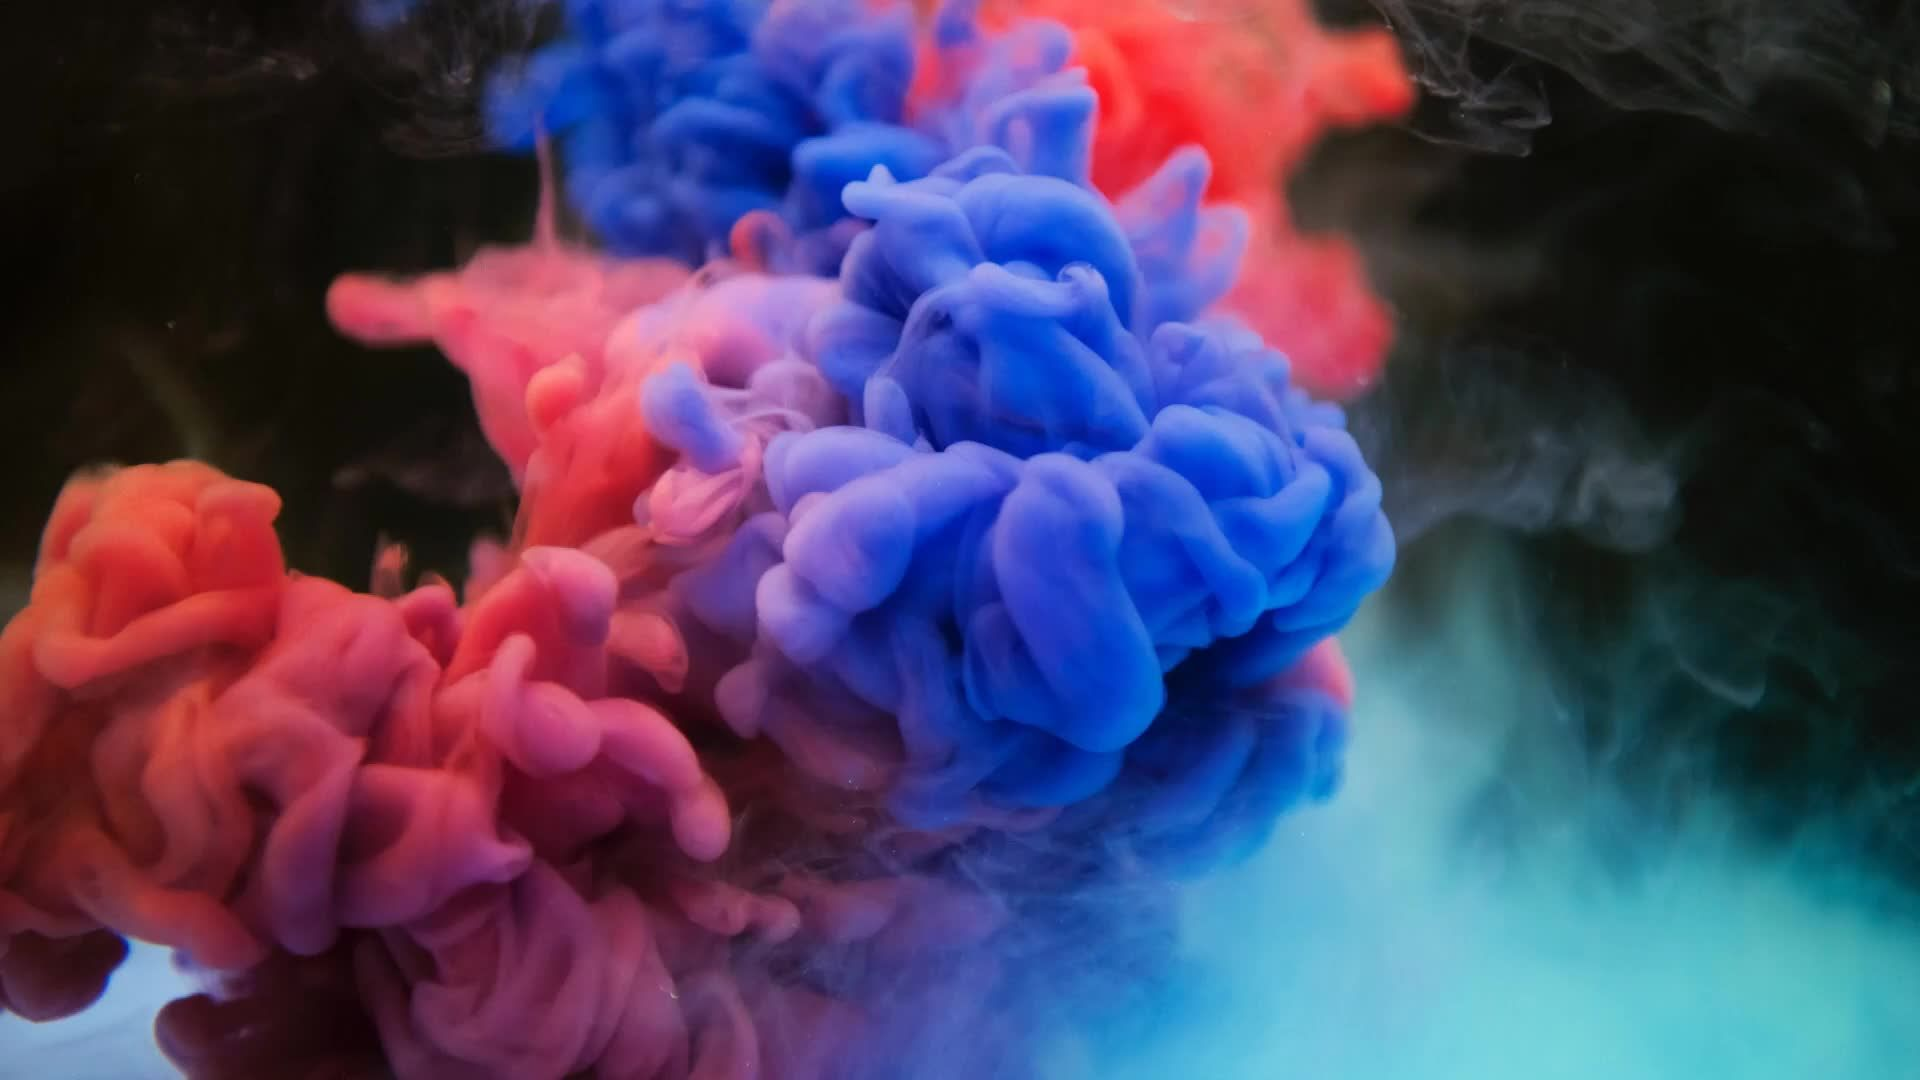 Artistic Abstract Colorful Smoke Live Wallpaper